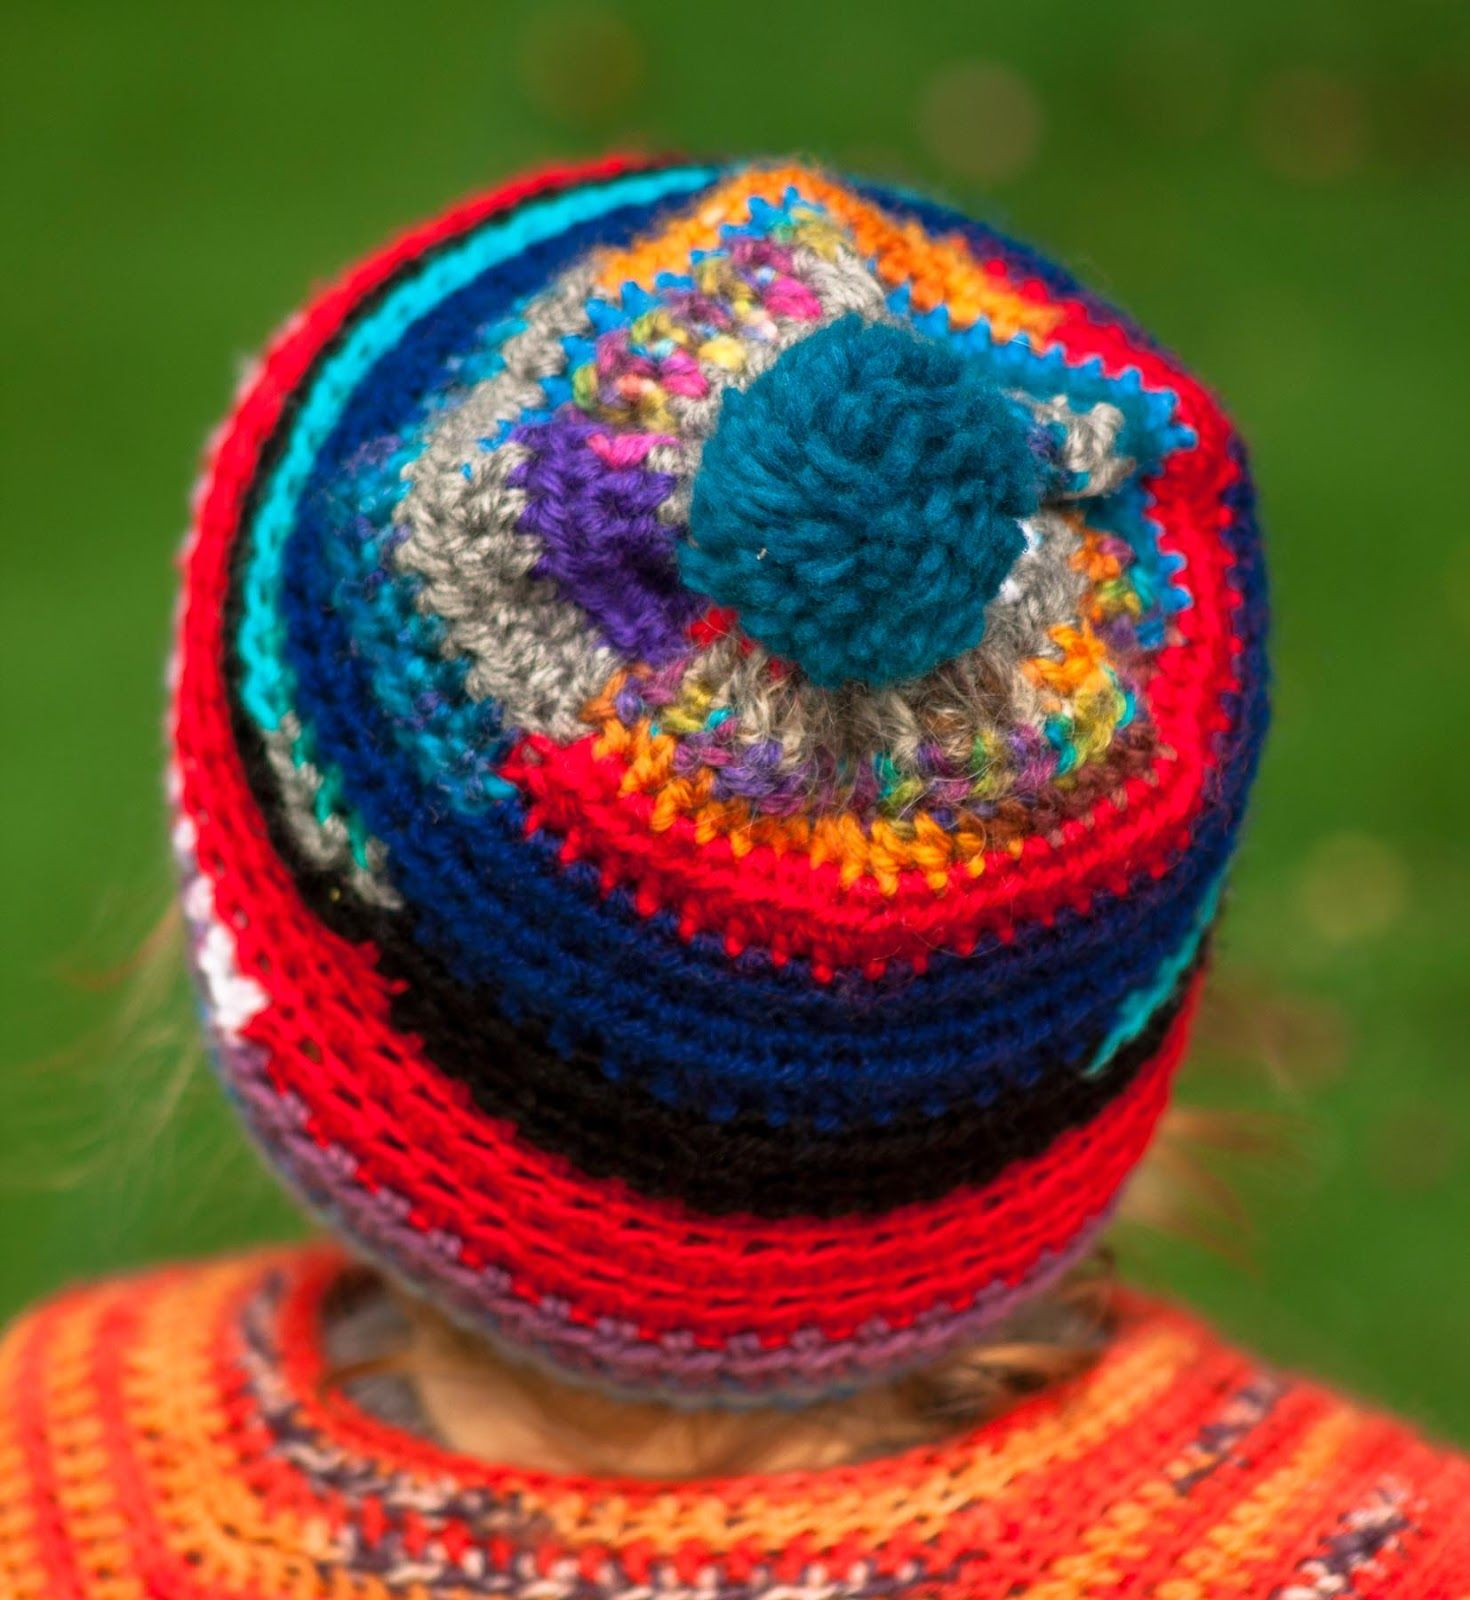 Easy+Crochet | Days of Yarning: Quick and Easy Crochet Hat - Free Pattern